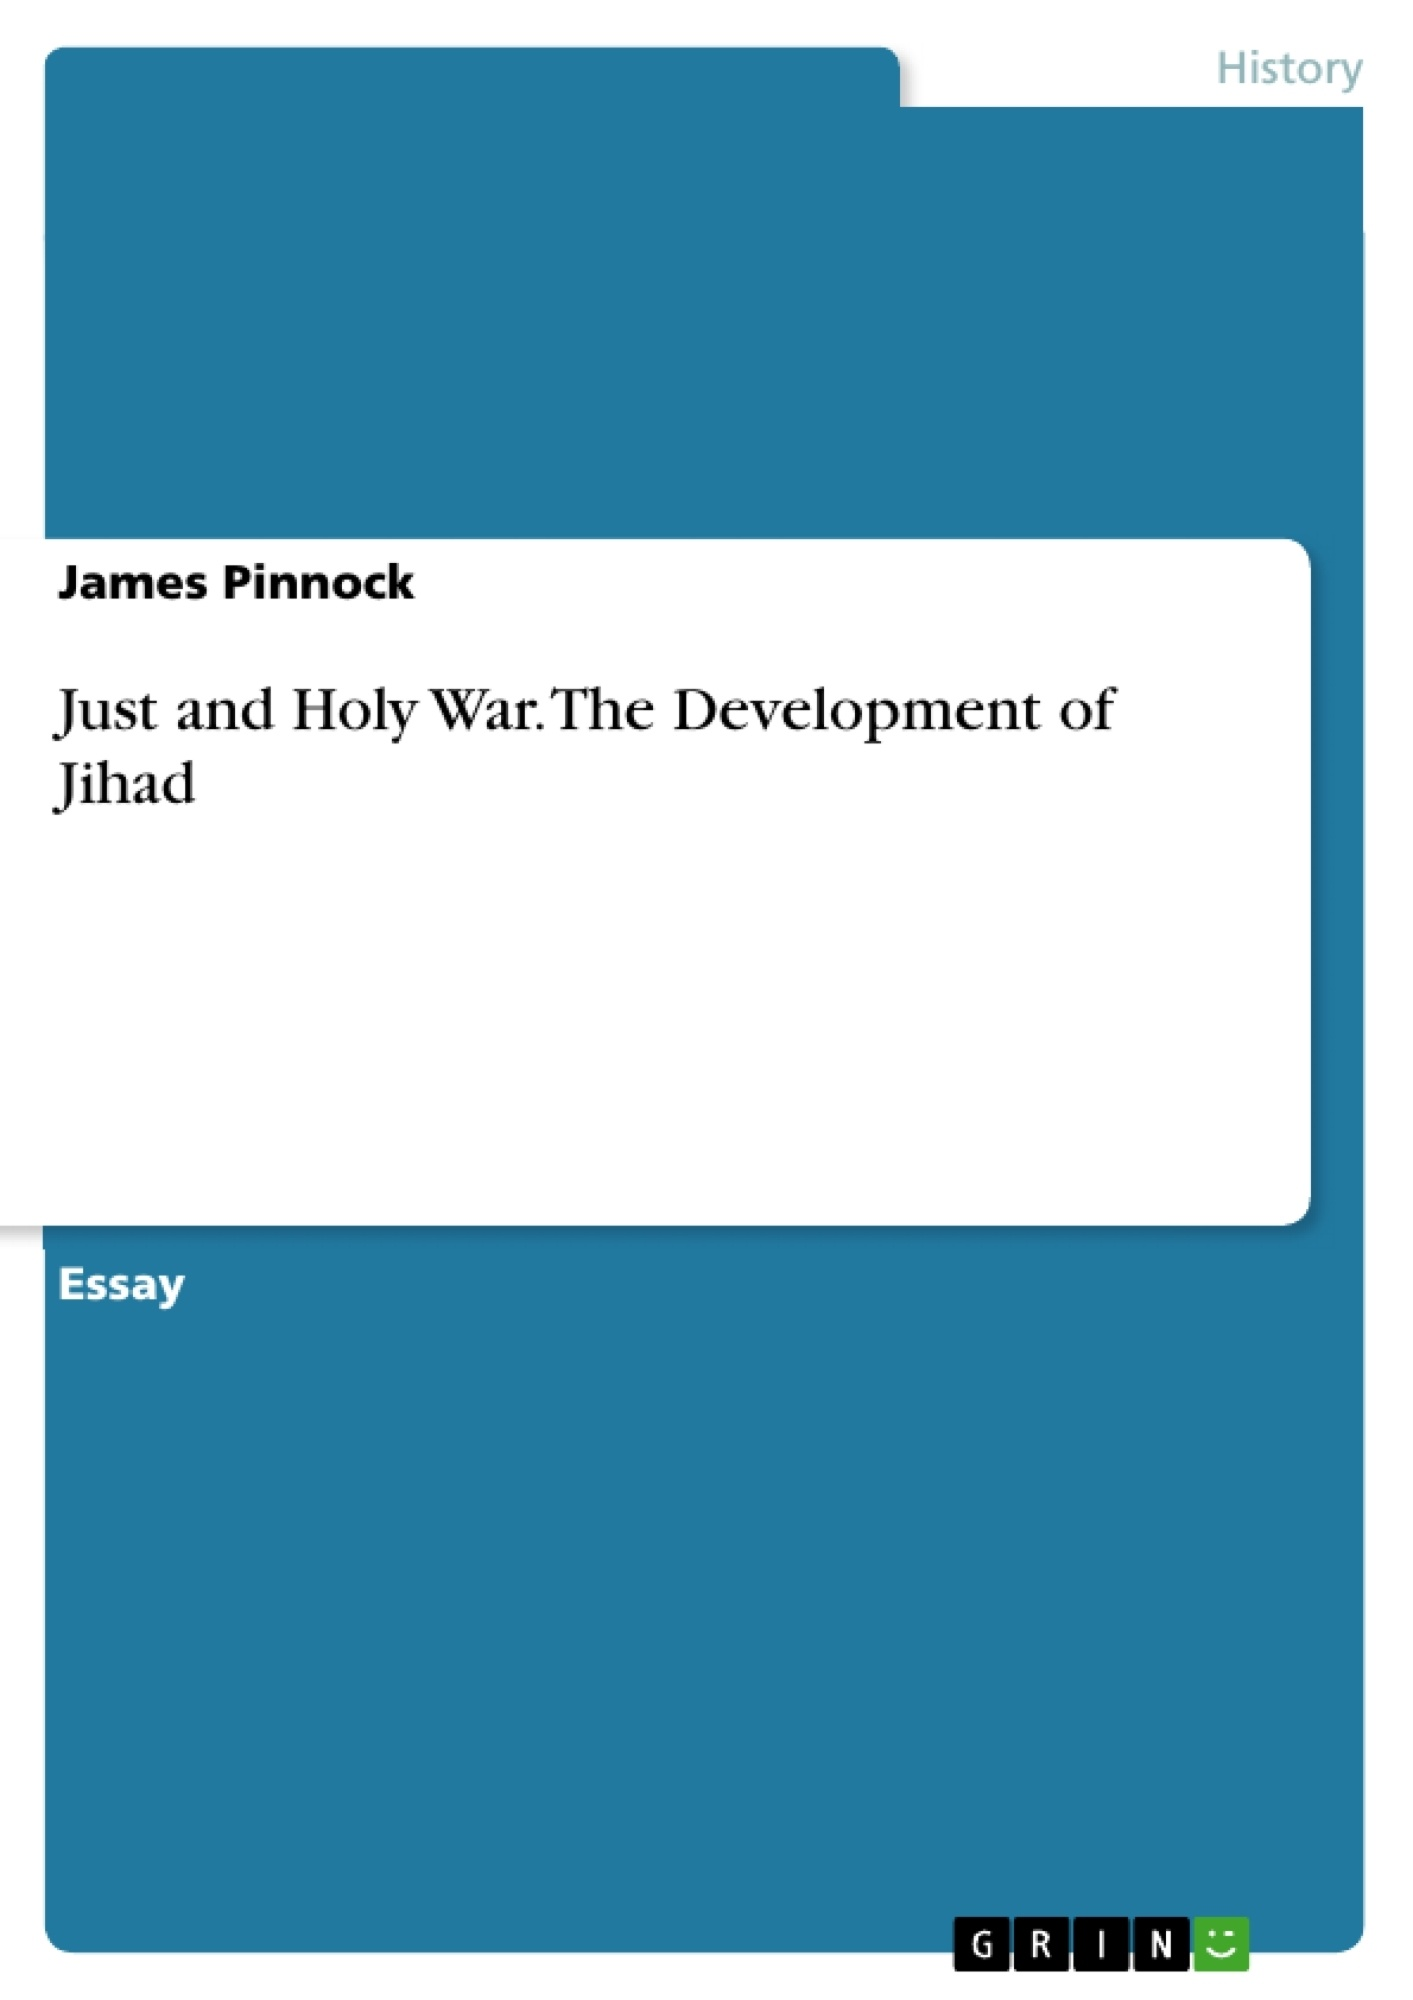 GRIN - Just and Holy War  The Development of Jihad